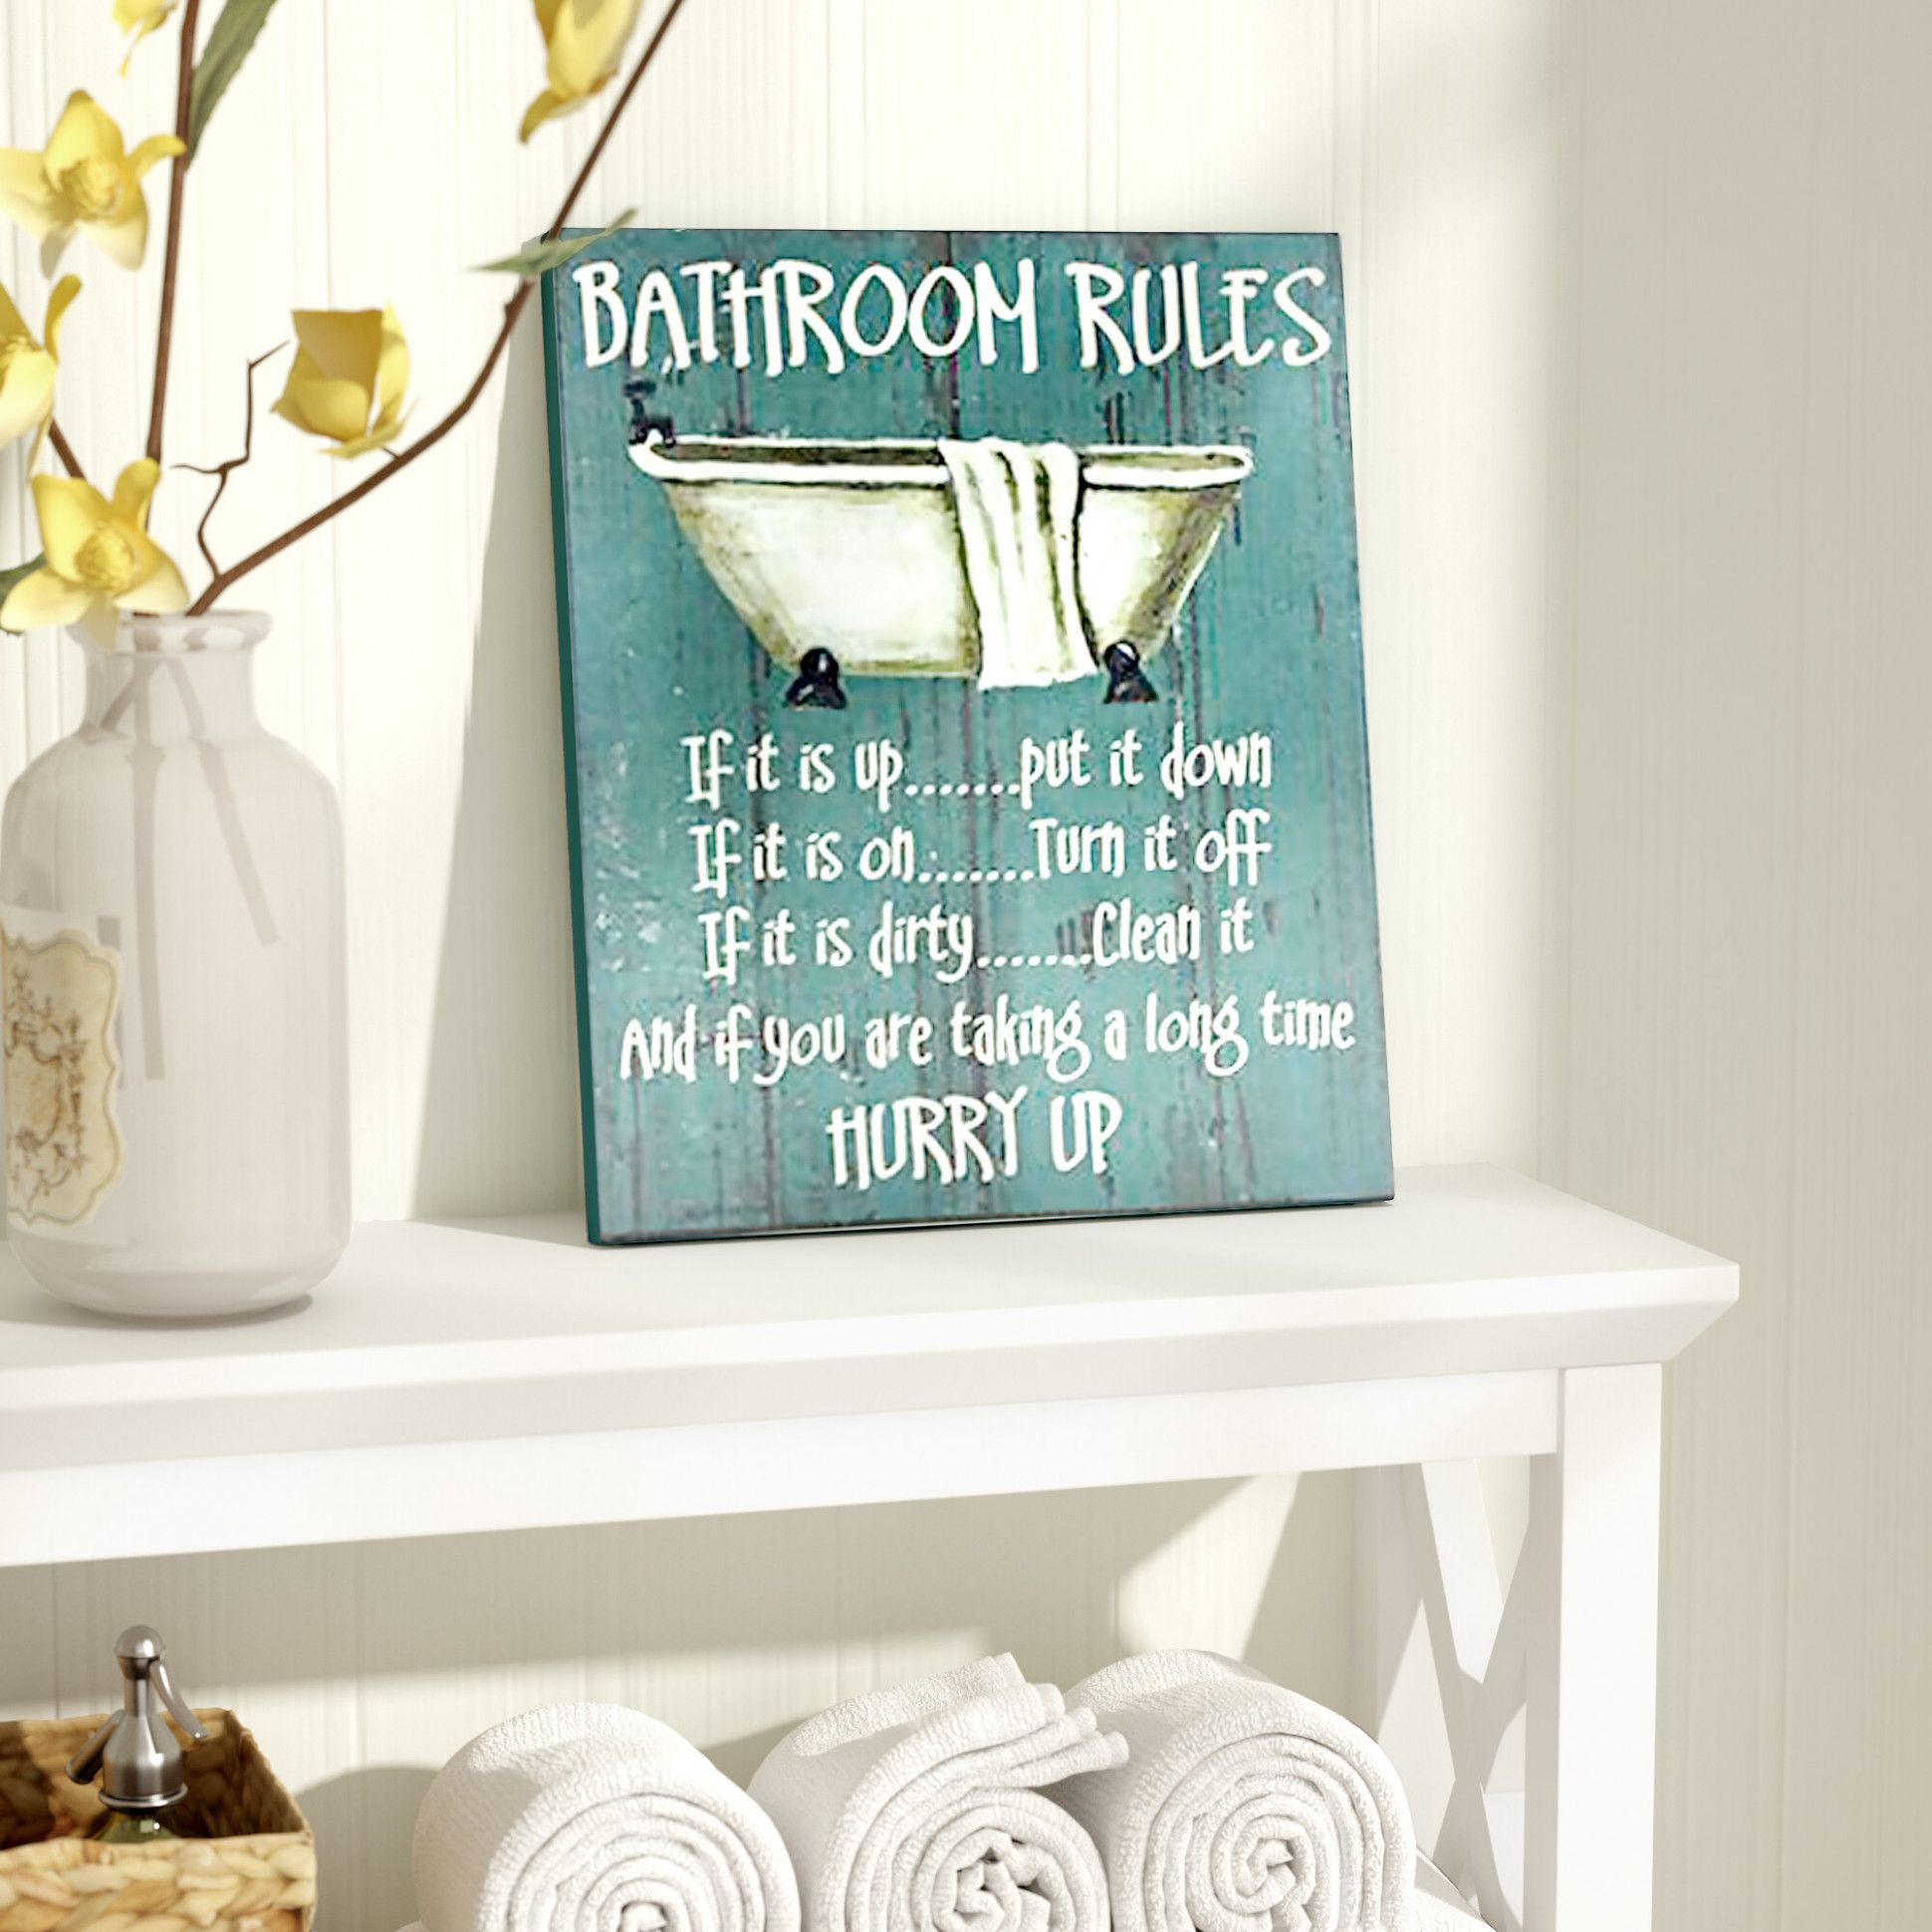 8 Amazing Bathroom Art Wayfair